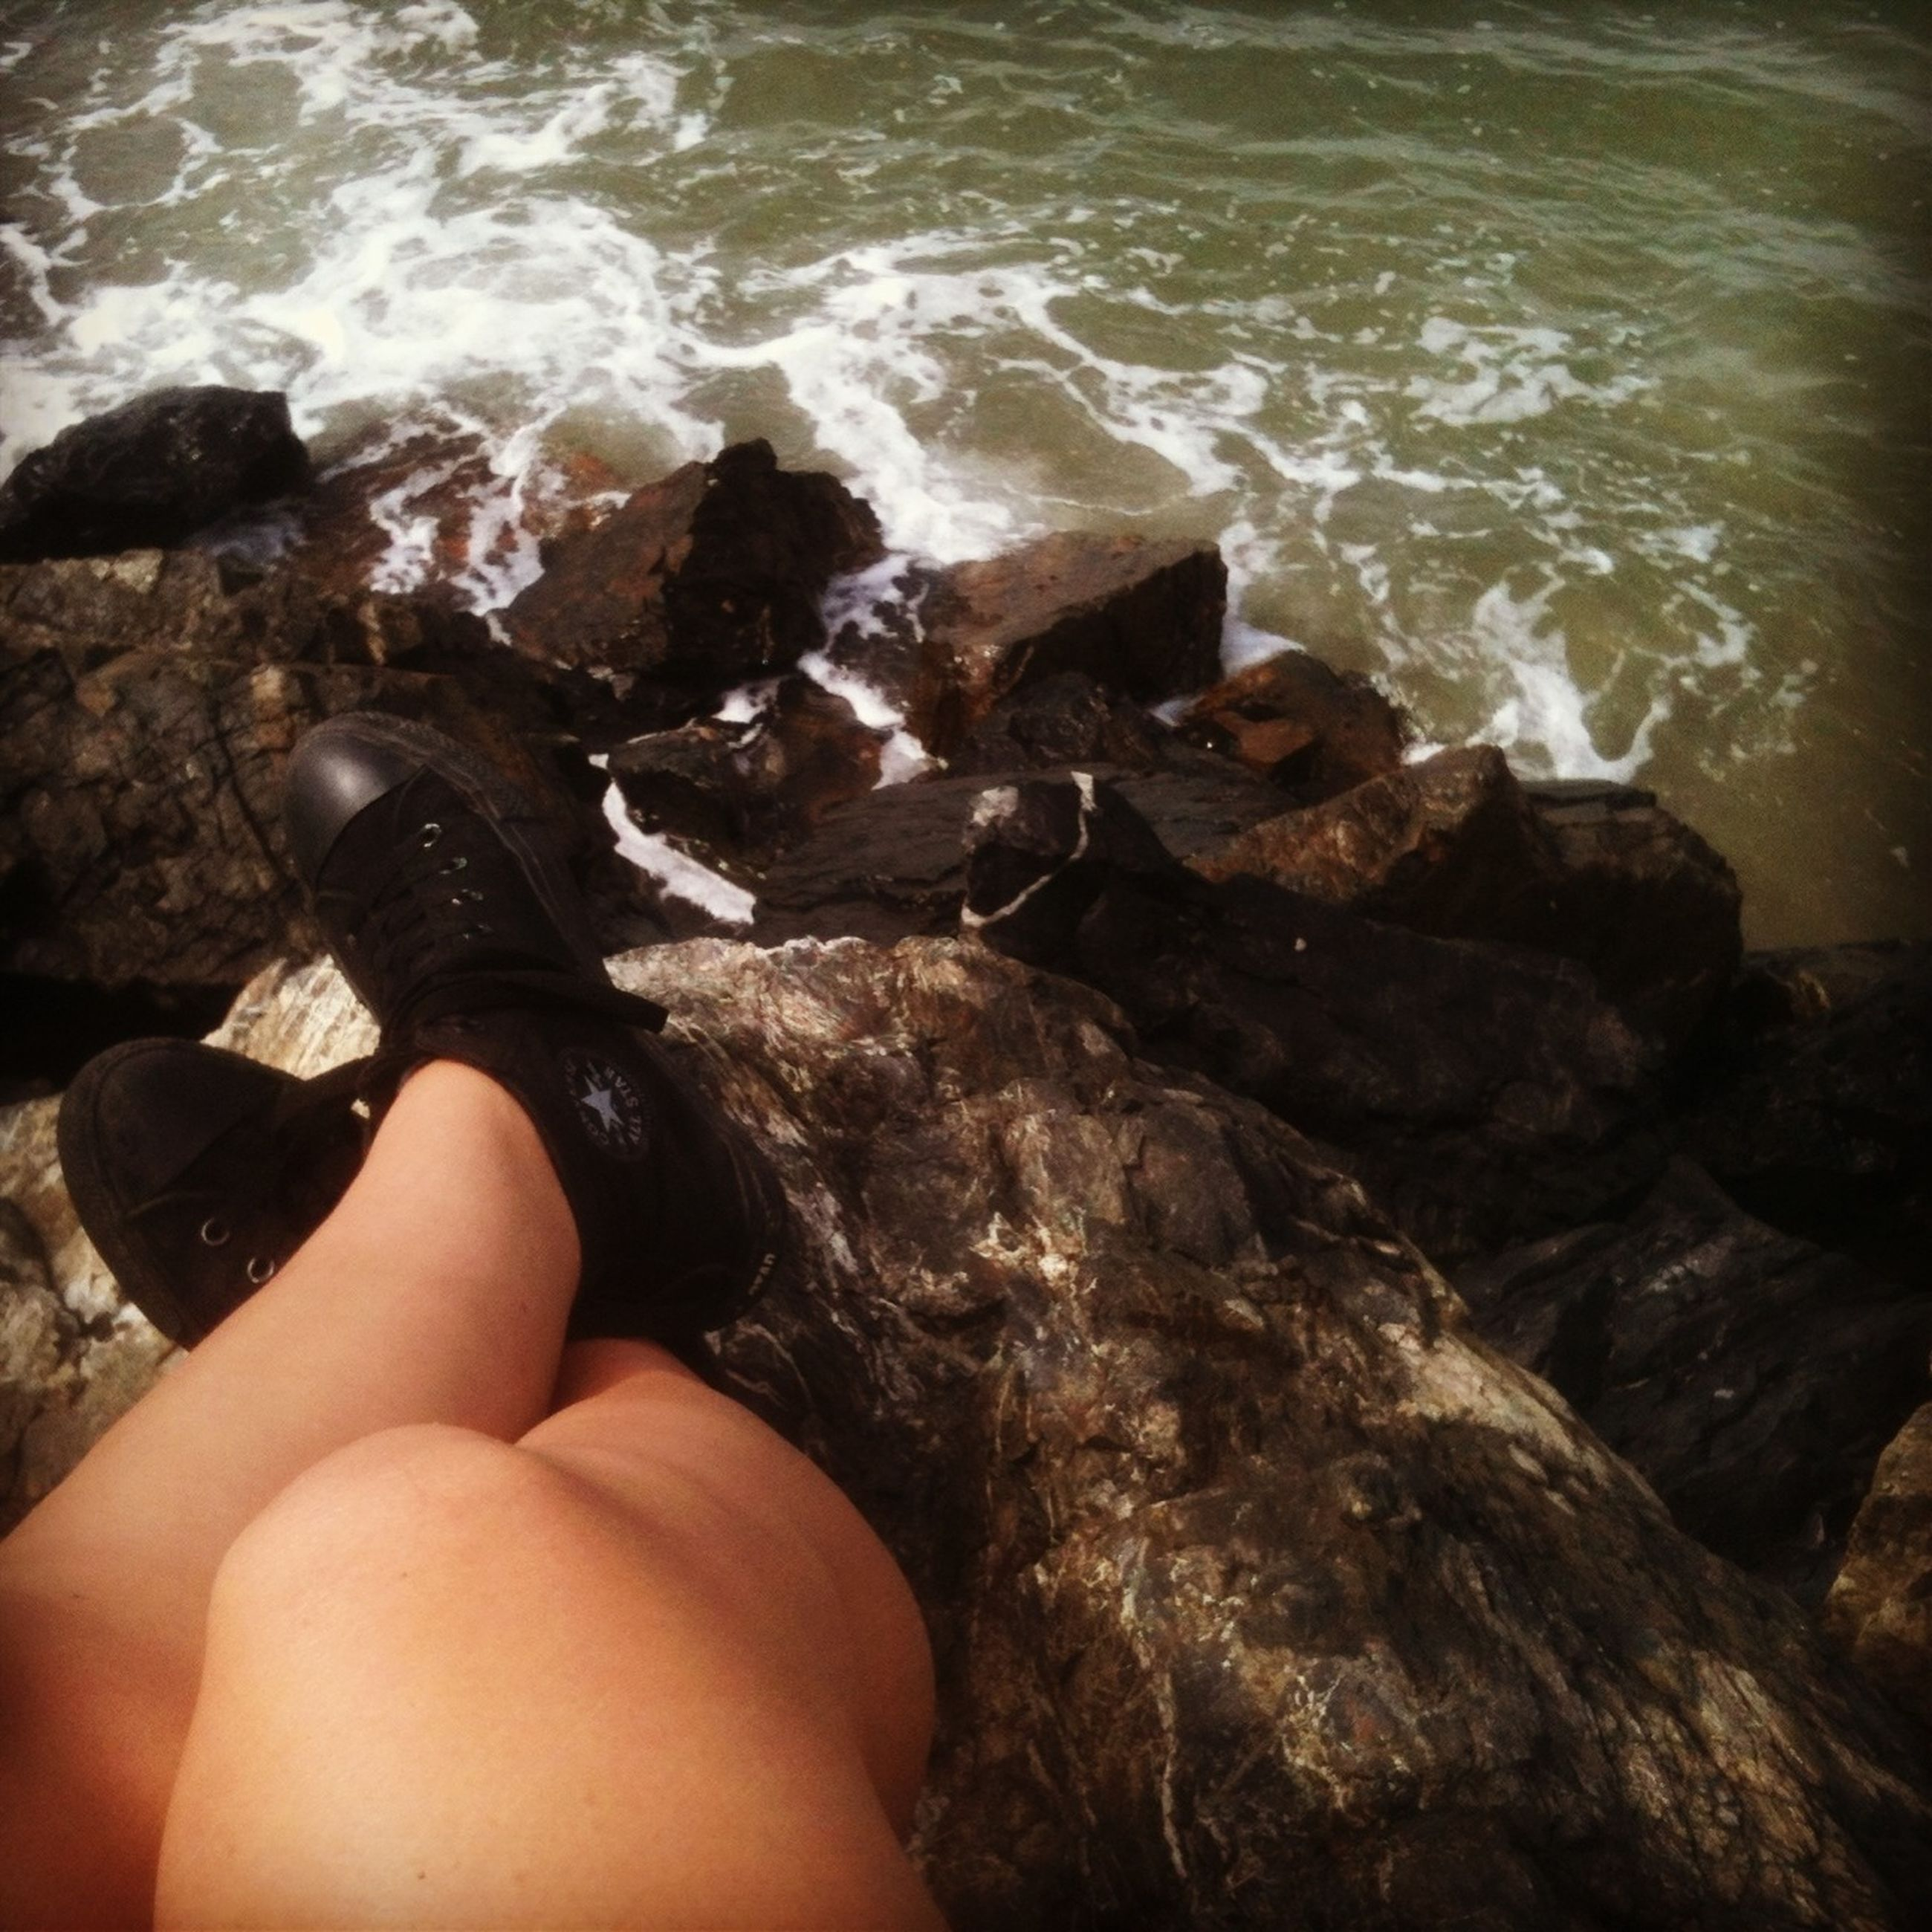 water, sea, lifestyles, beach, personal perspective, leisure activity, rock - object, person, low section, shore, high angle view, barefoot, vacations, relaxation, human foot, nature